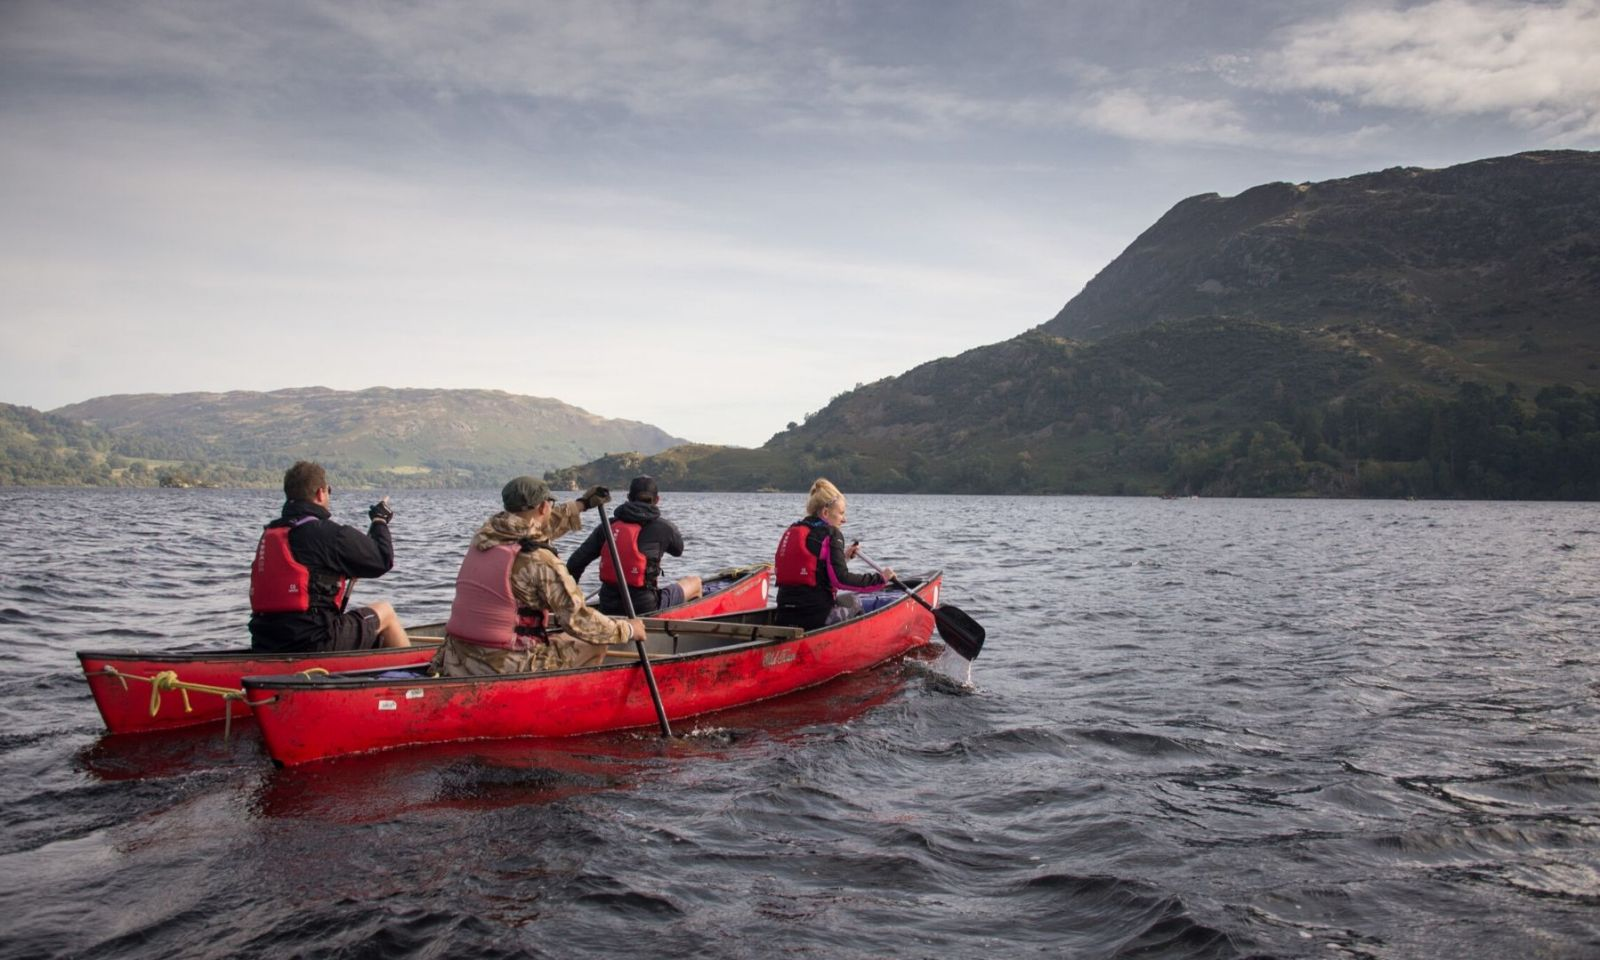 A group in canoes on Ullswater during a challenge event.